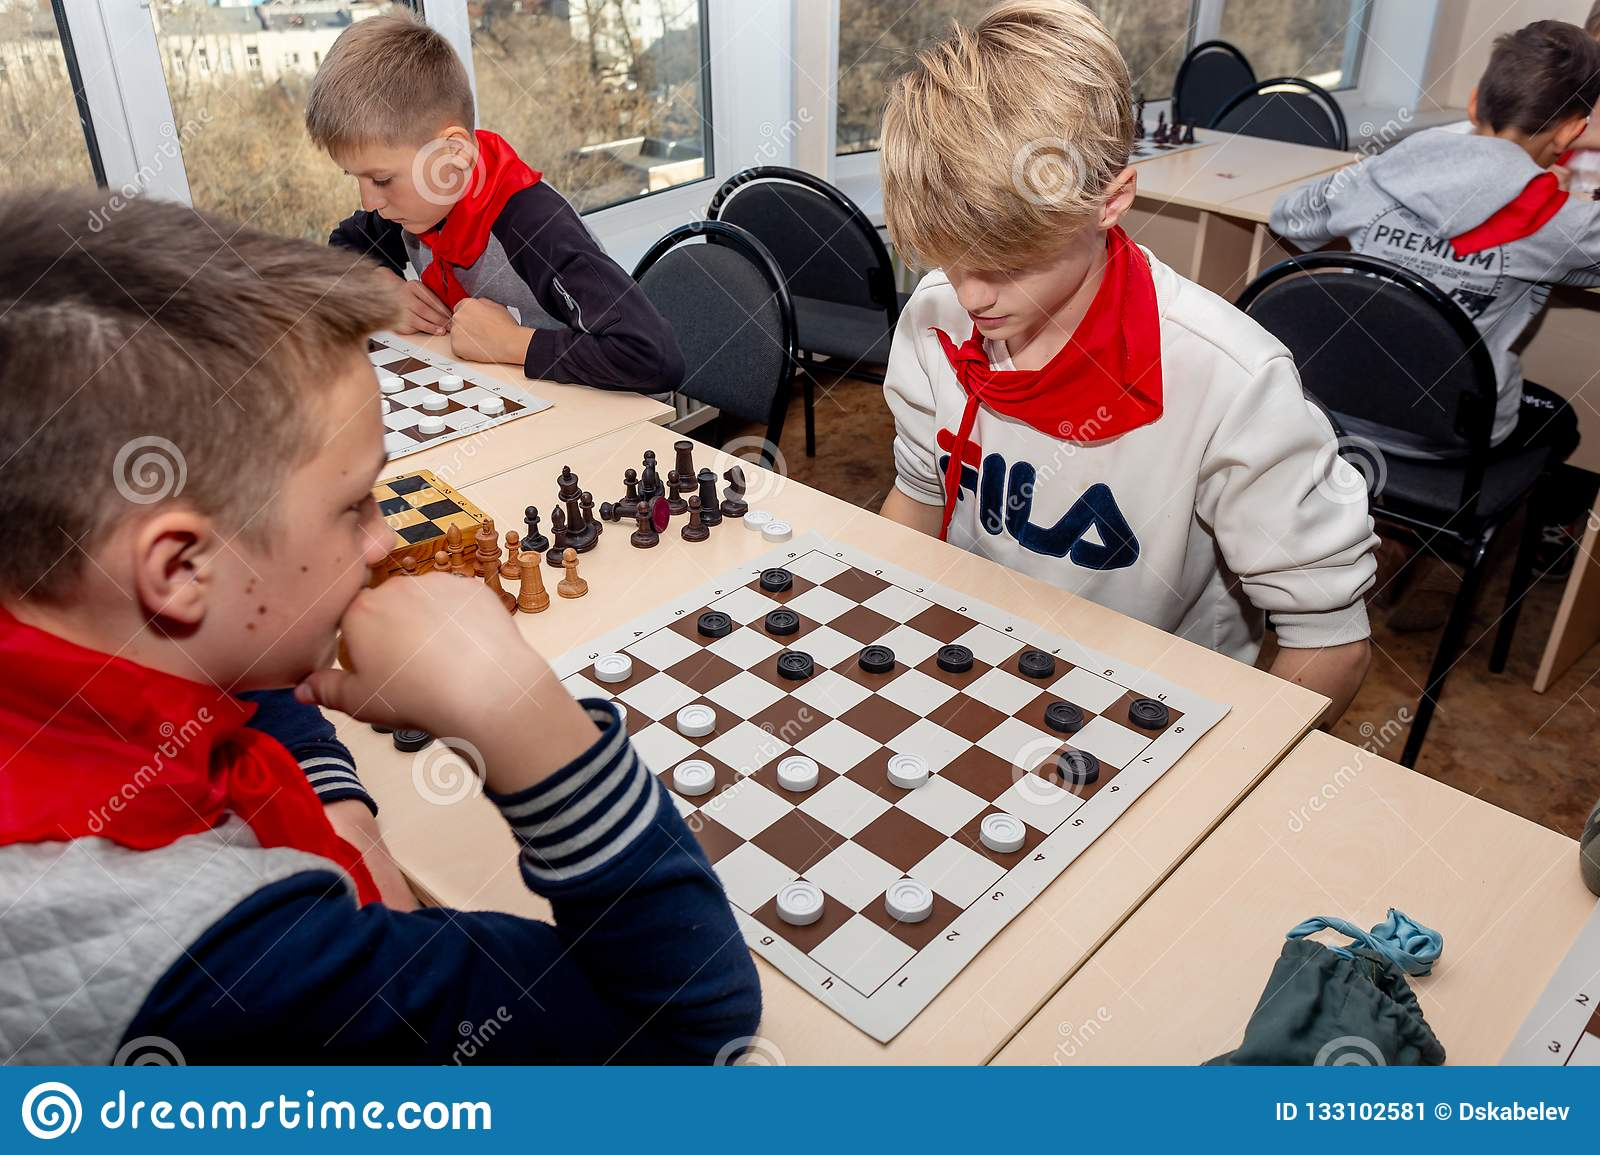 Russia, Vladivostok, 12/01/2018. Kids play chess during chess competition in chess club. Education, chess and mind games.